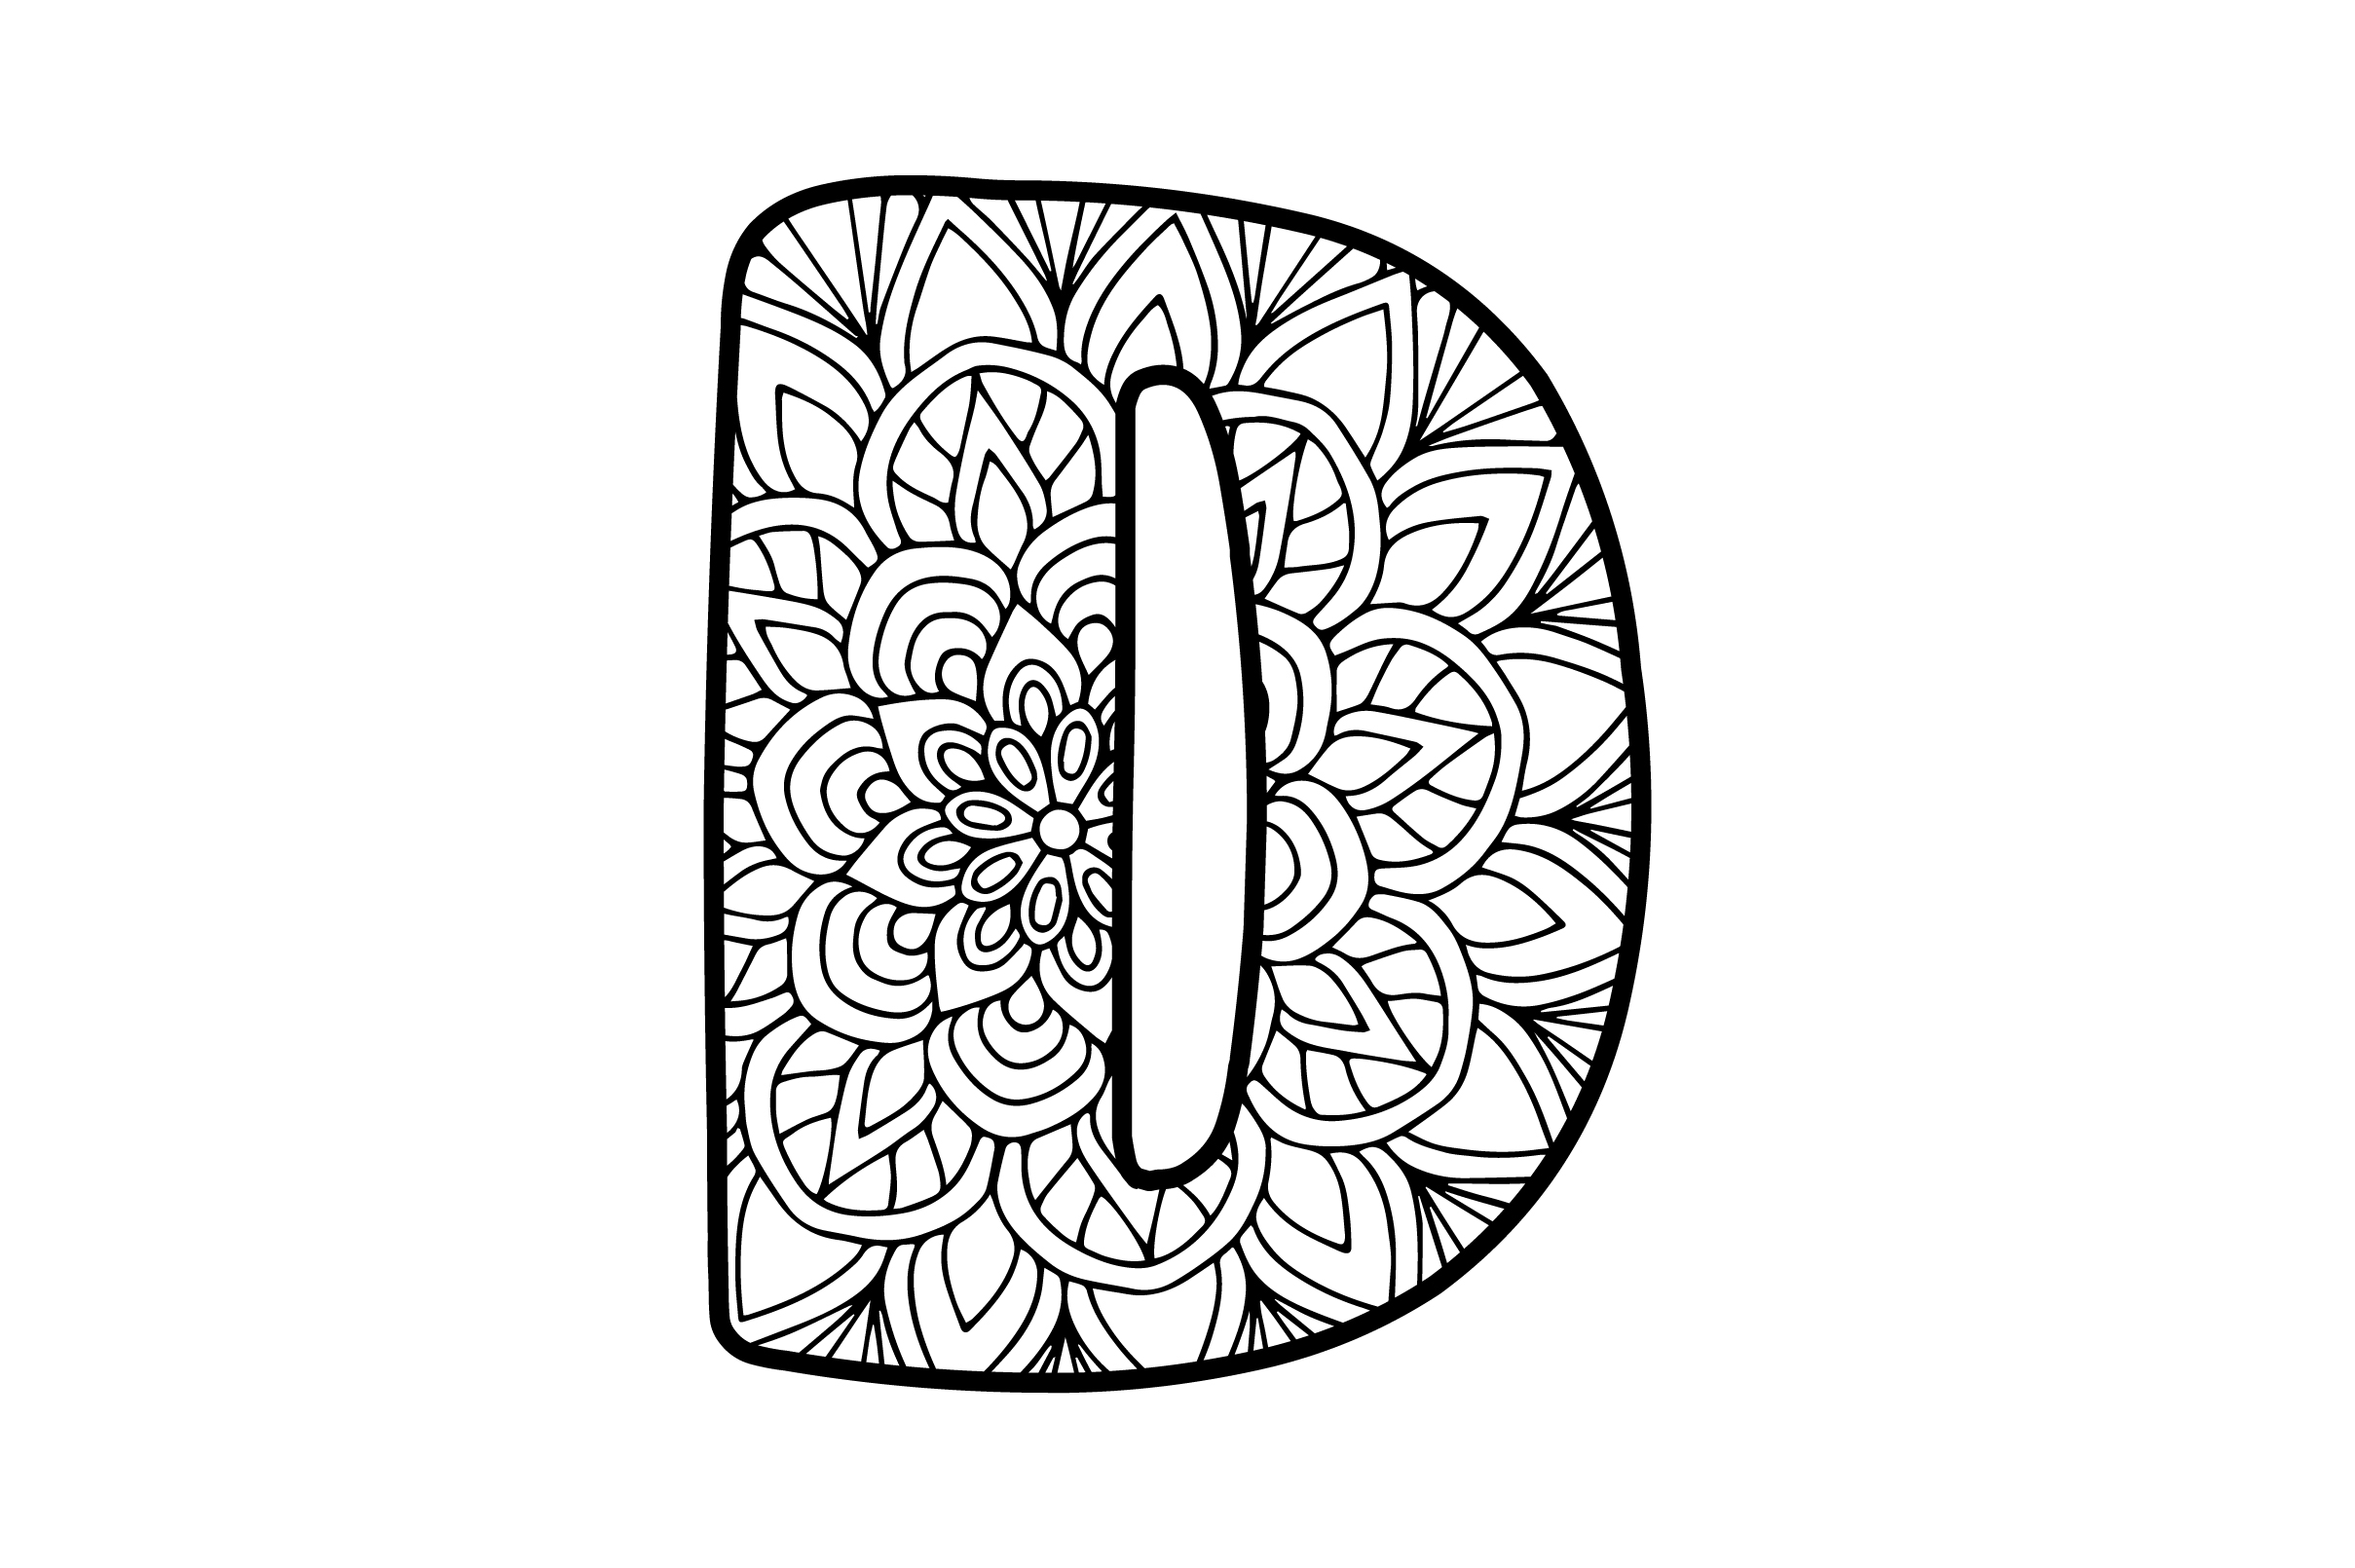 Download Free Mandala Alphabet D Svg Cut File By Creative Fabrica Crafts for Cricut Explore, Silhouette and other cutting machines.